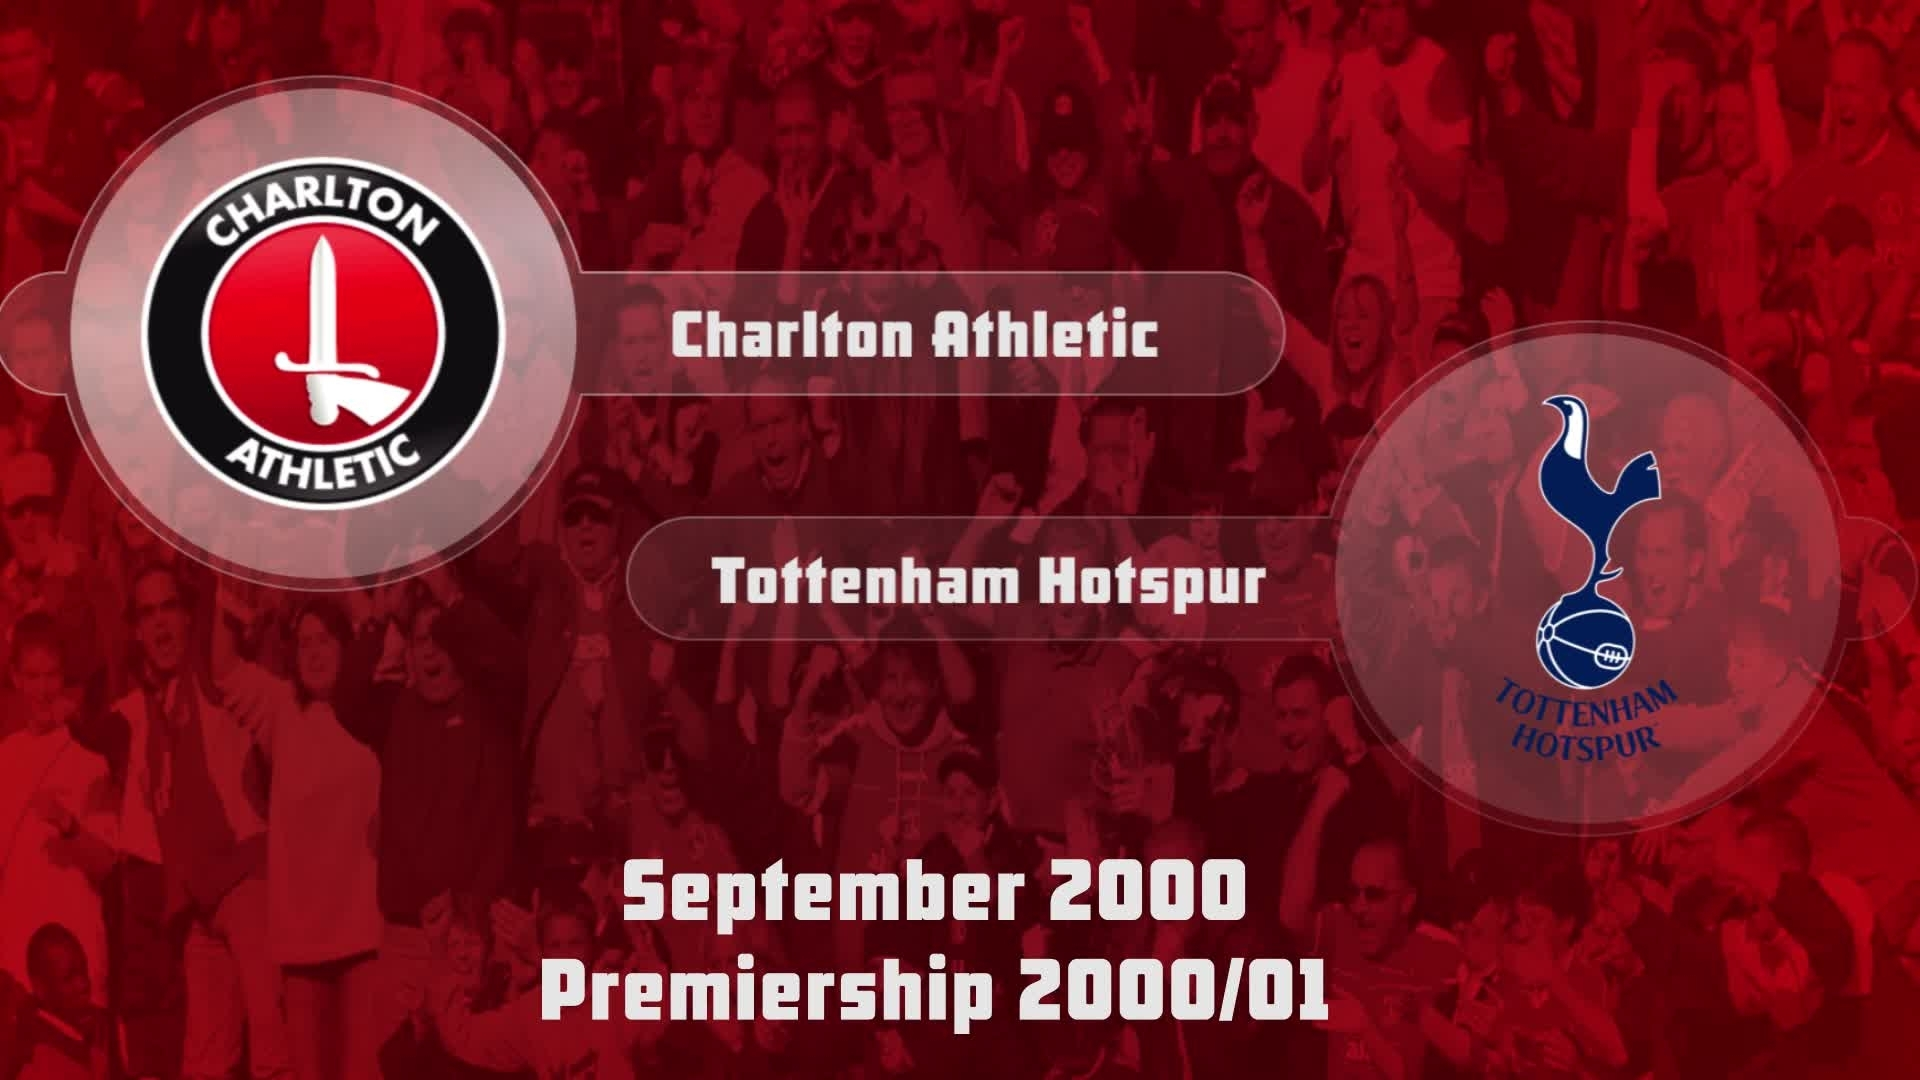 06 HIGHLIGHTS | Charlton 1 Tottenham Hotspur 0 (Sept 2000)